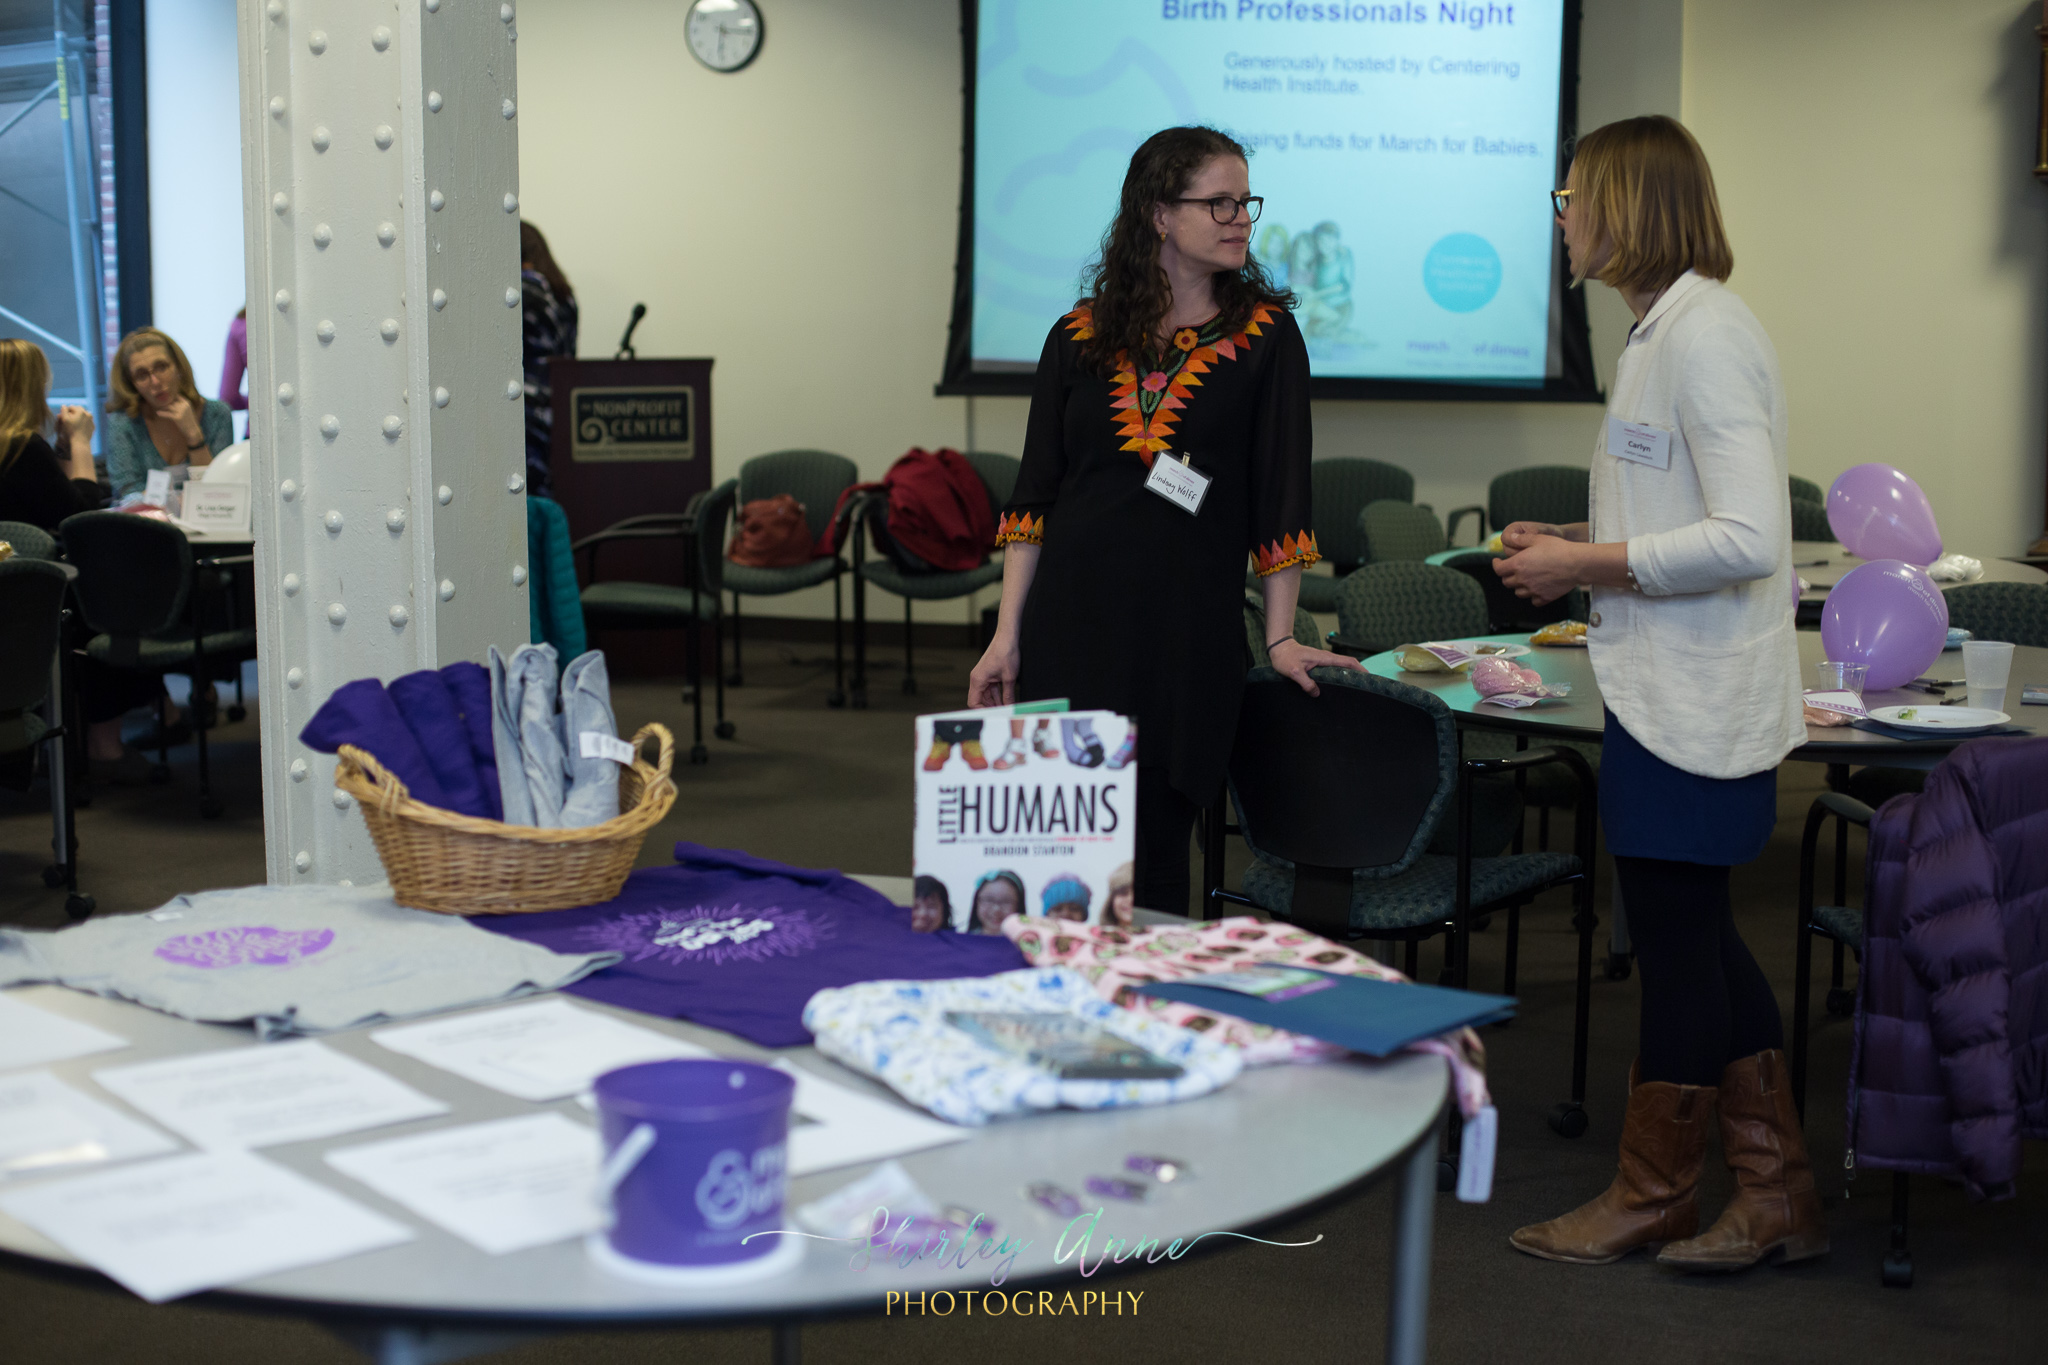 Birth Professionals-Event (7 of 56).jpg